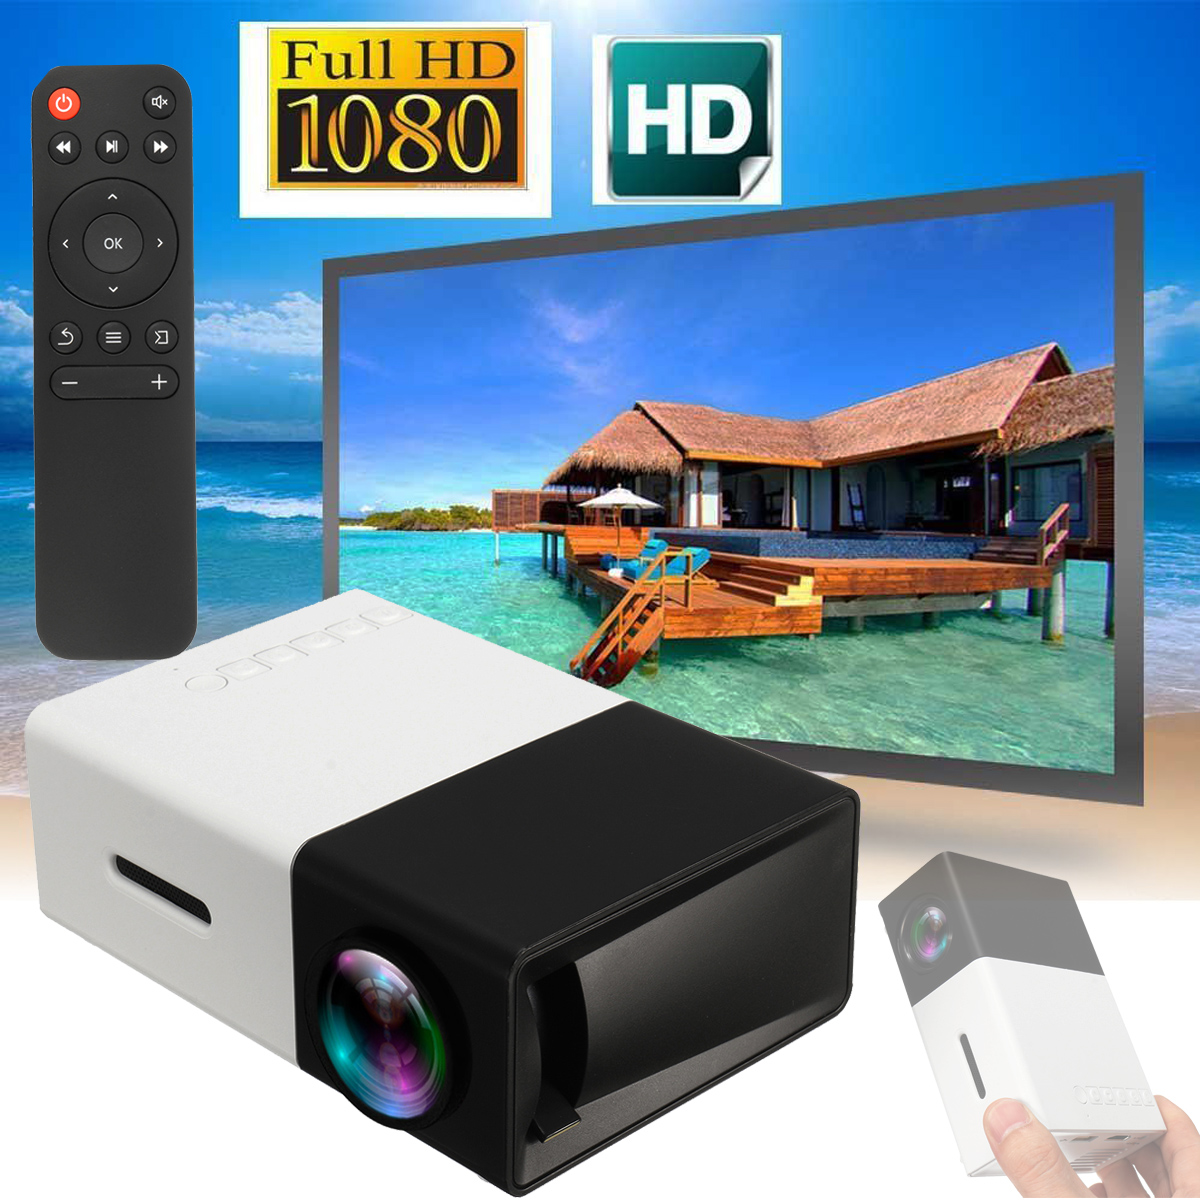 Mini Portable HD 1080P LED AV SD USB Projector Home Theater Black LED Home Projector Mobile projector uc40 55whd 1080p mini home 1080p led projector 50lm w hdmi av sd usb